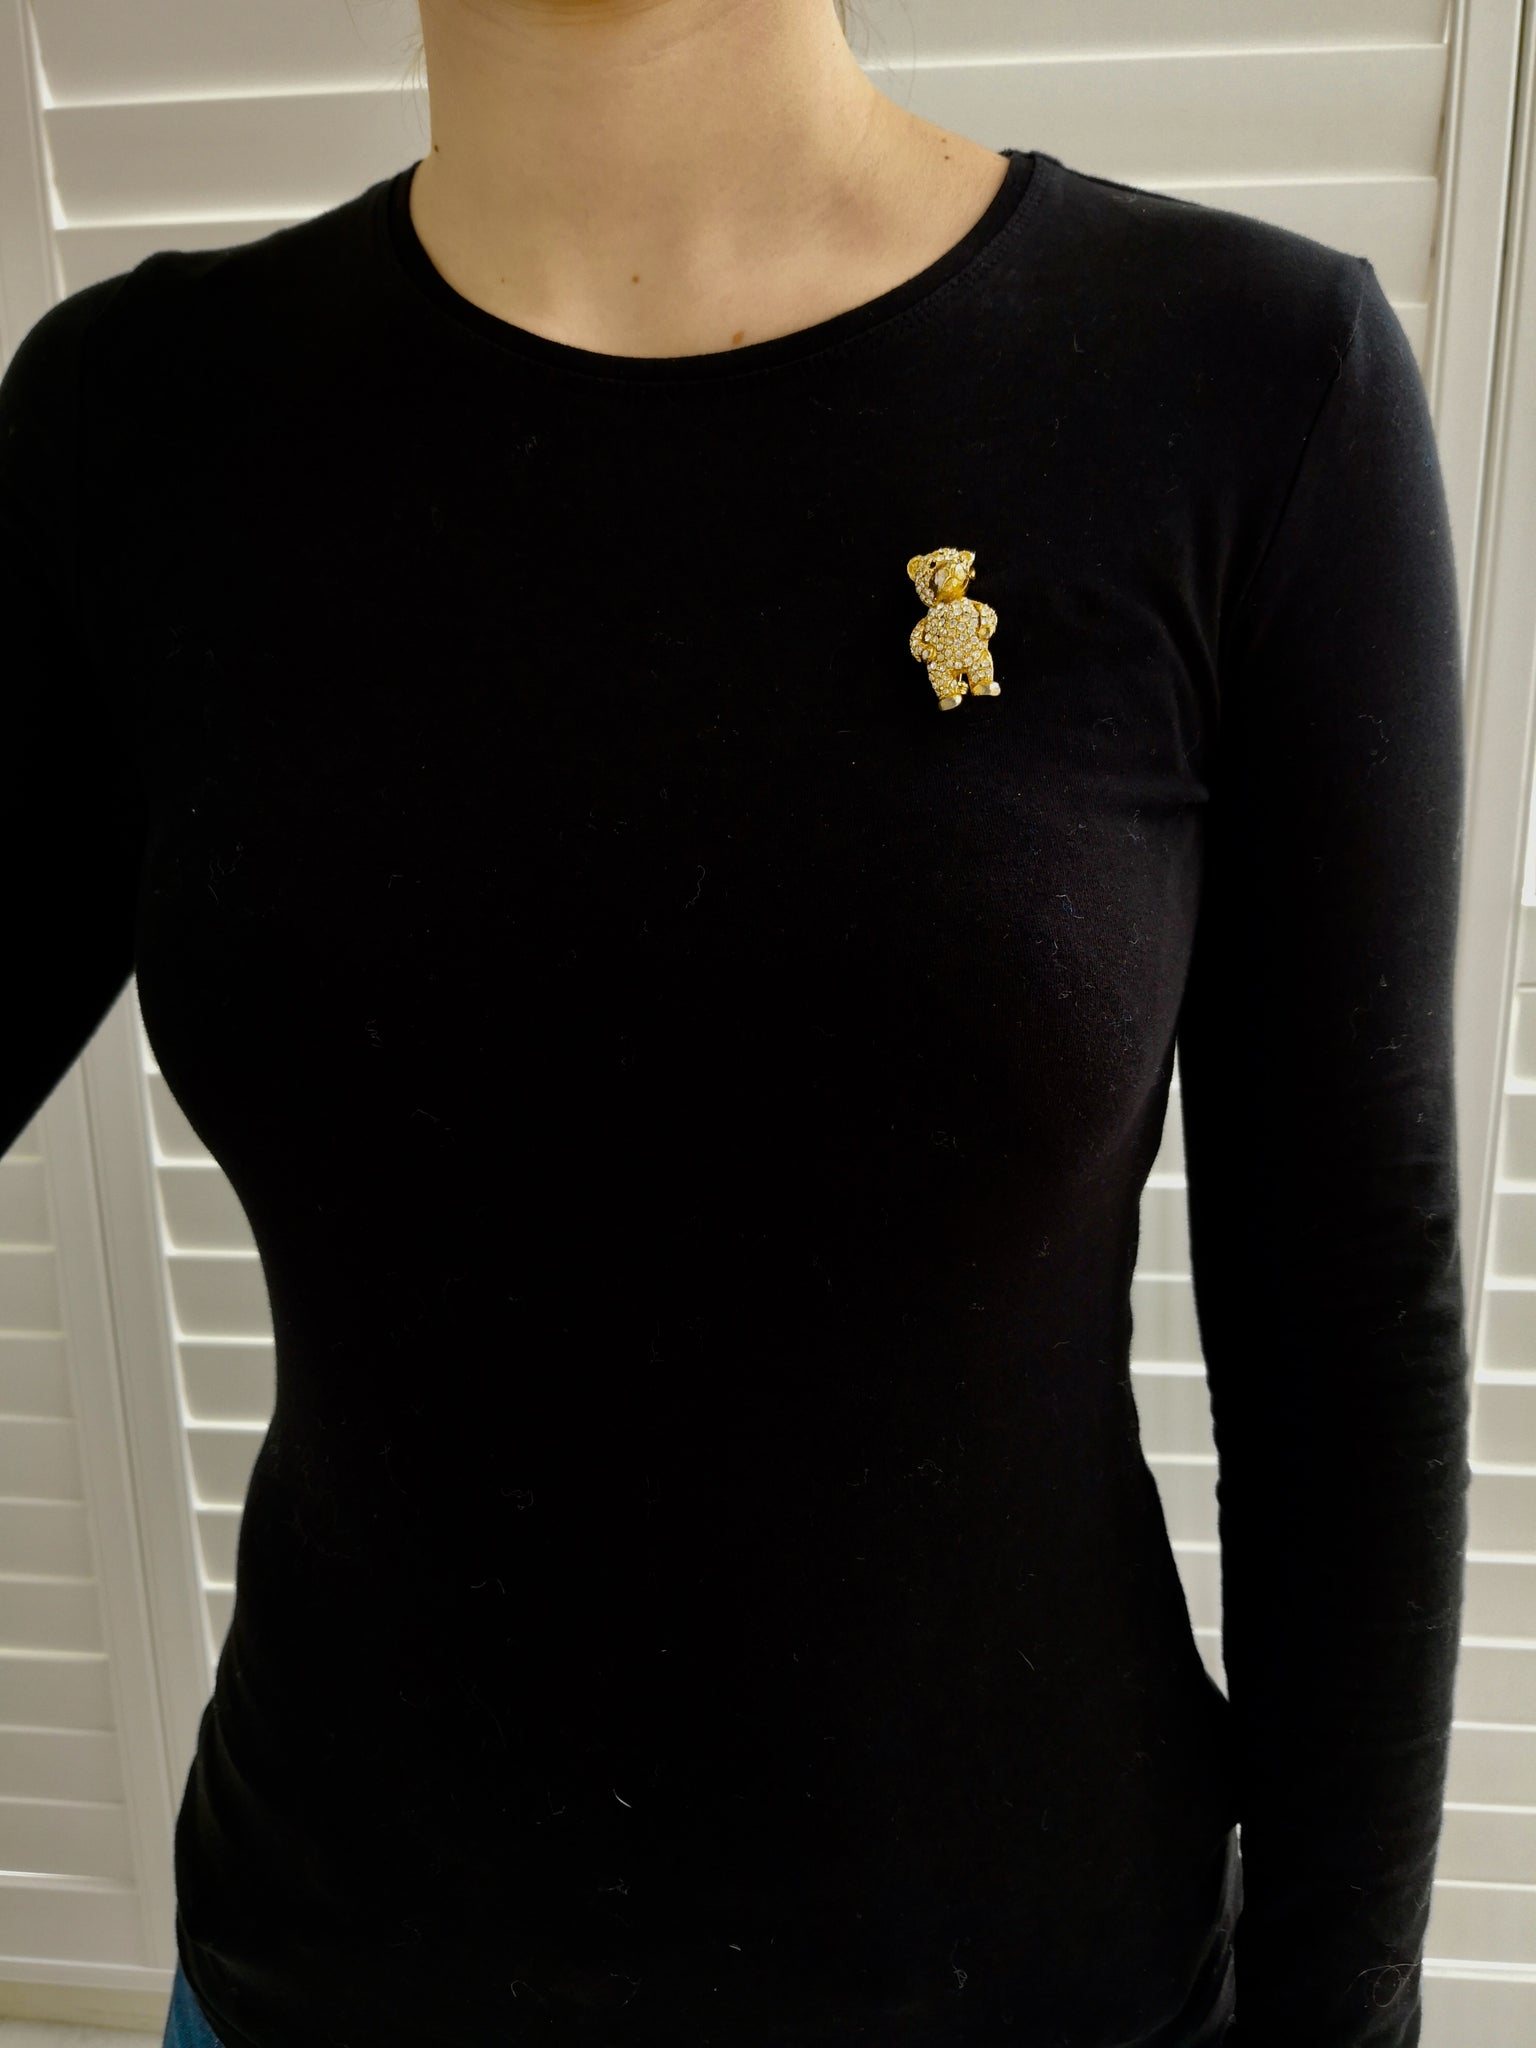 VINTAGE GOLD AND DIAMANTE TEDDY BEAR BROOCH